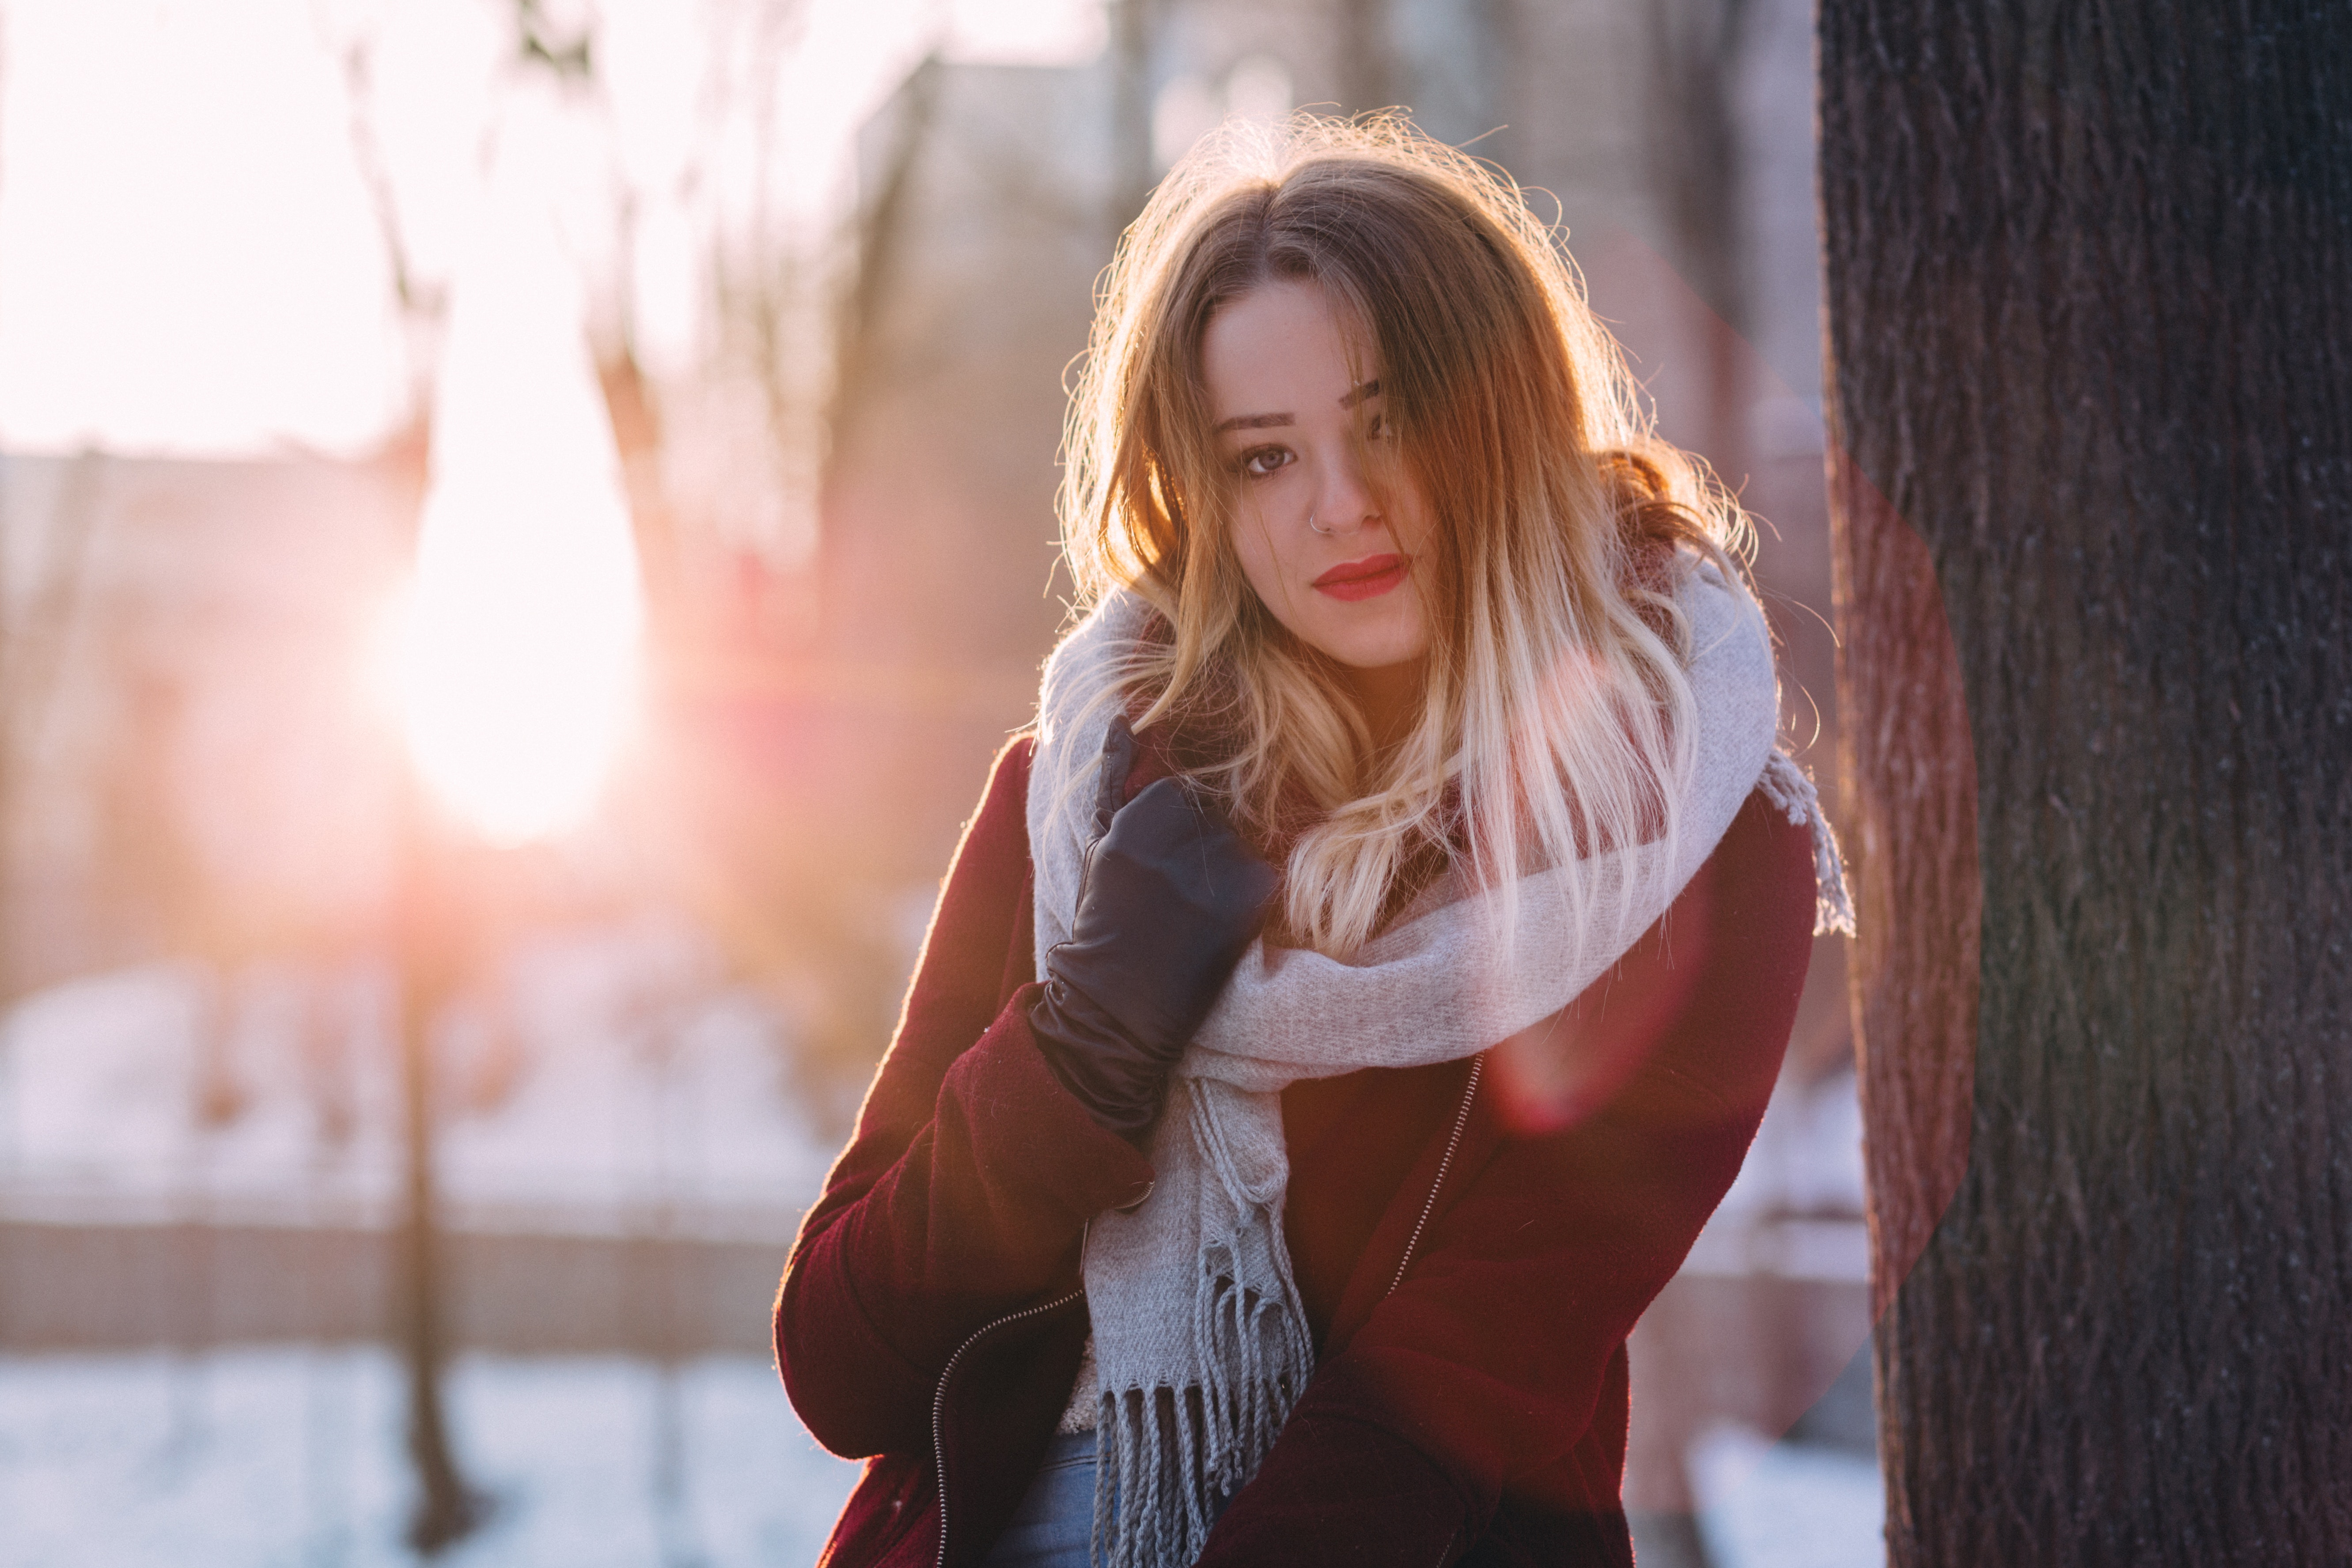 Portrait of Young Woman during Winter, Park, Young, Woman, Winter, HQ Photo